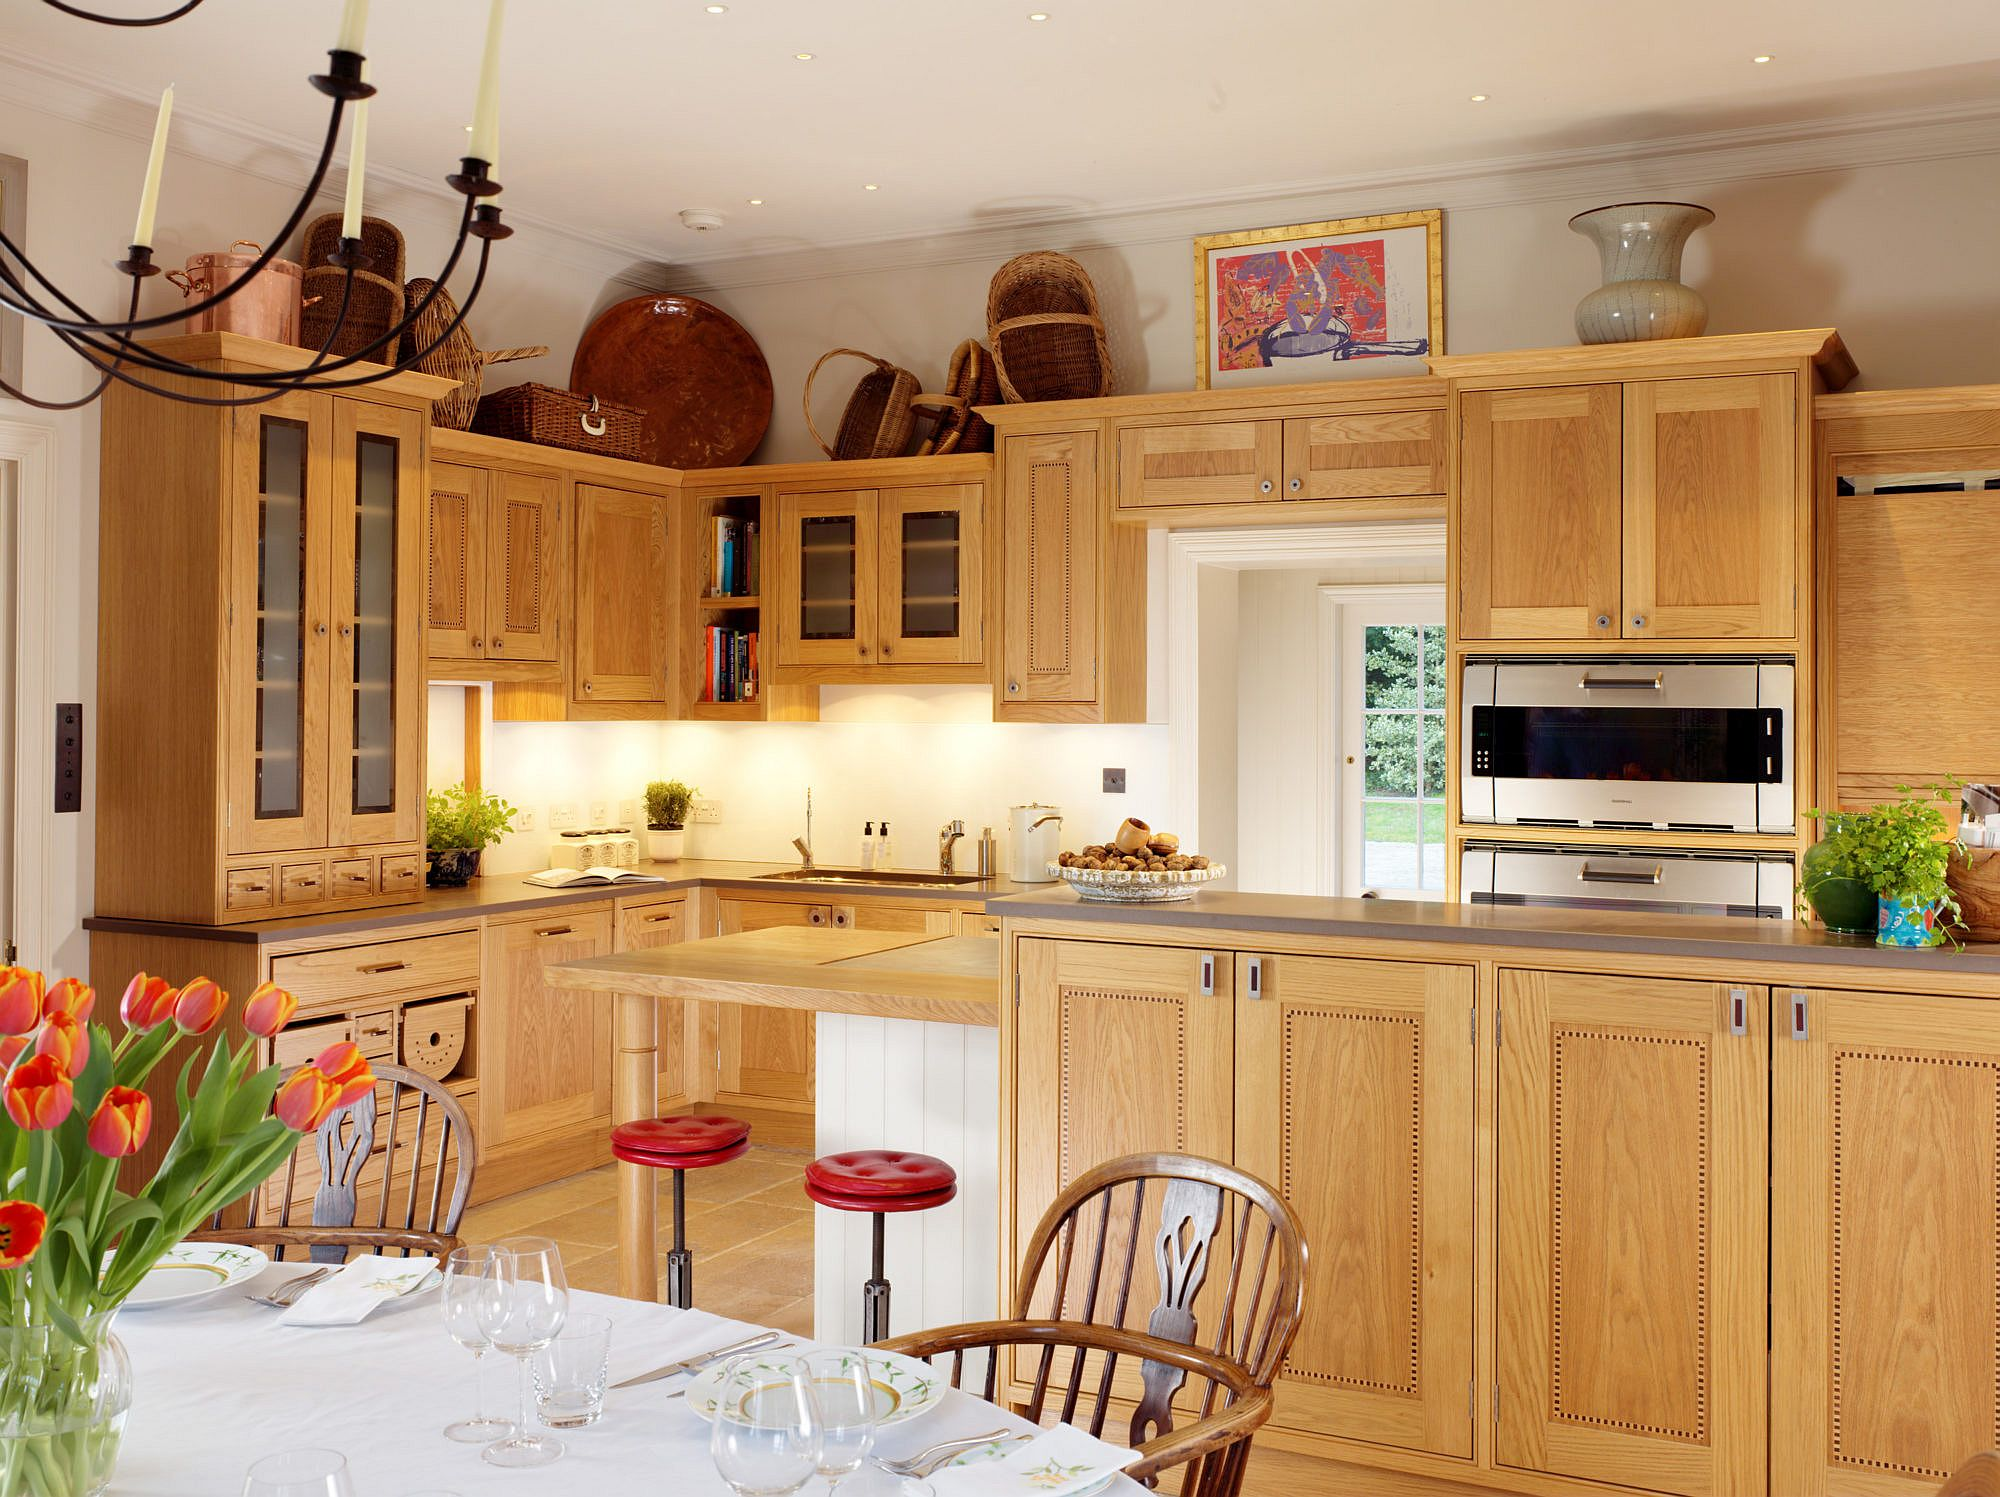 Wooden-cabinets-can-give-the-kitchen-in-corner-its-own-unique-style